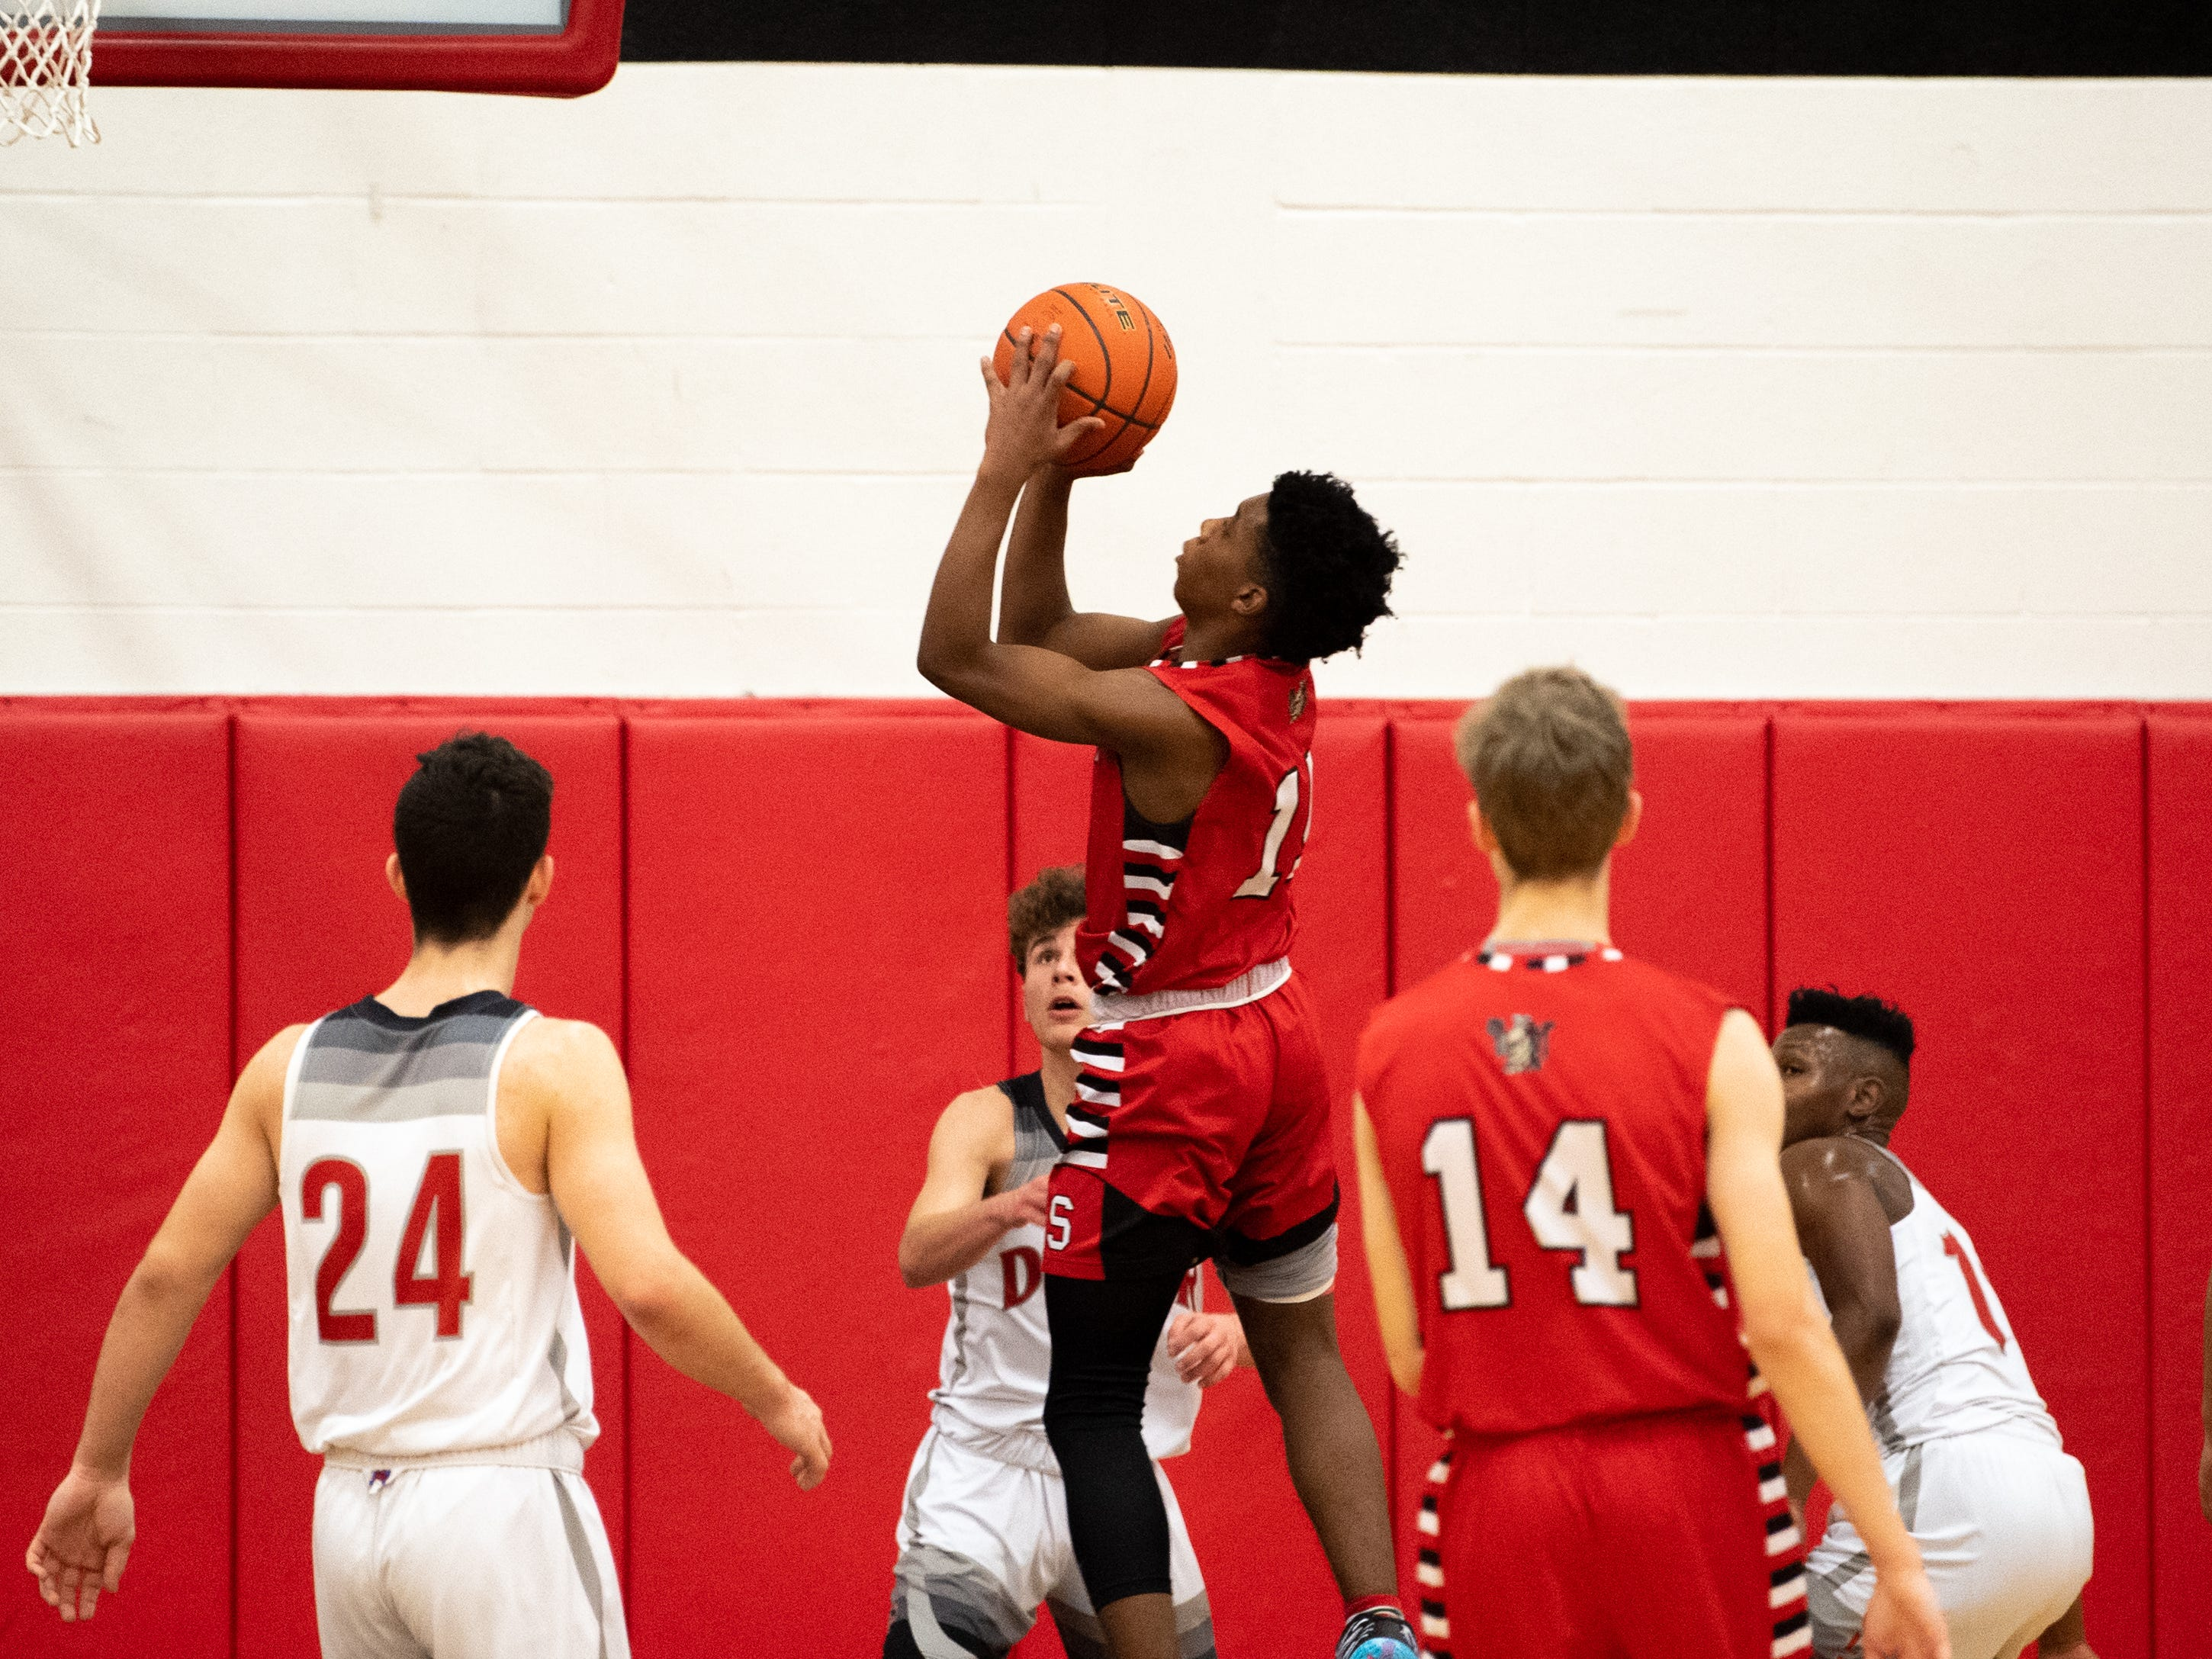 Jalen Franklin (15) goes the basket with authority during the boys' basketball game between Dover and Susquehannock at Dover Area High School, December 18, 2018. The Eagles defeated the Warriors 69-61.